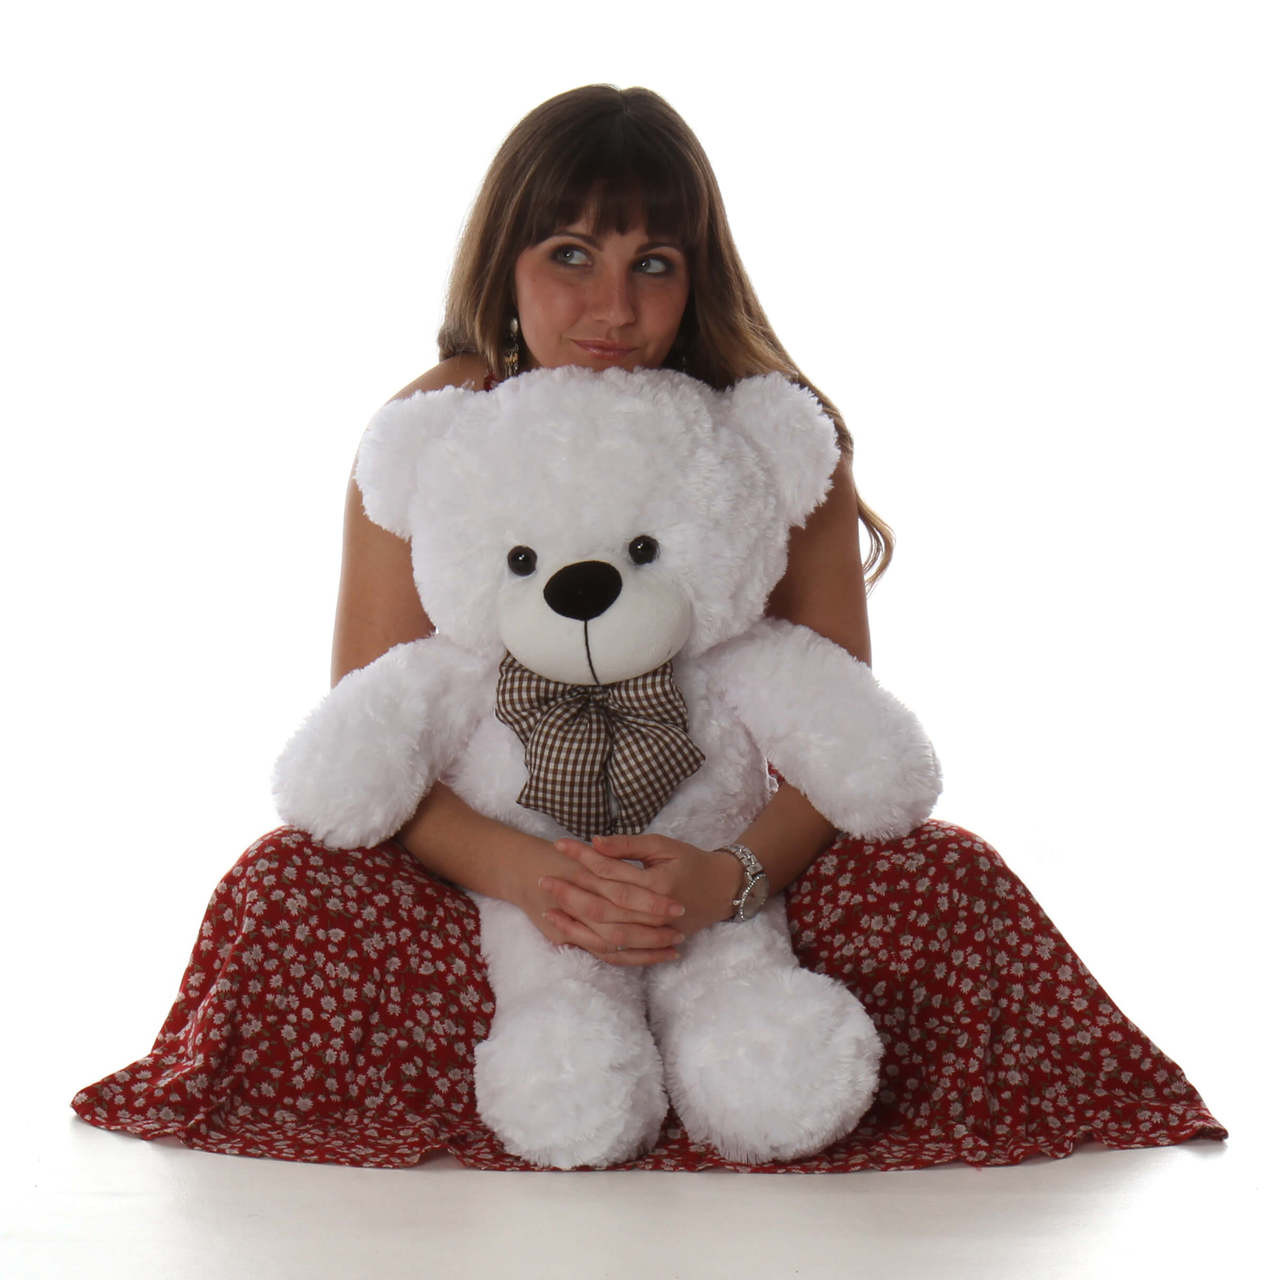 "Coco Cuddles 30"" Big White Stuffed Teddy Bear"